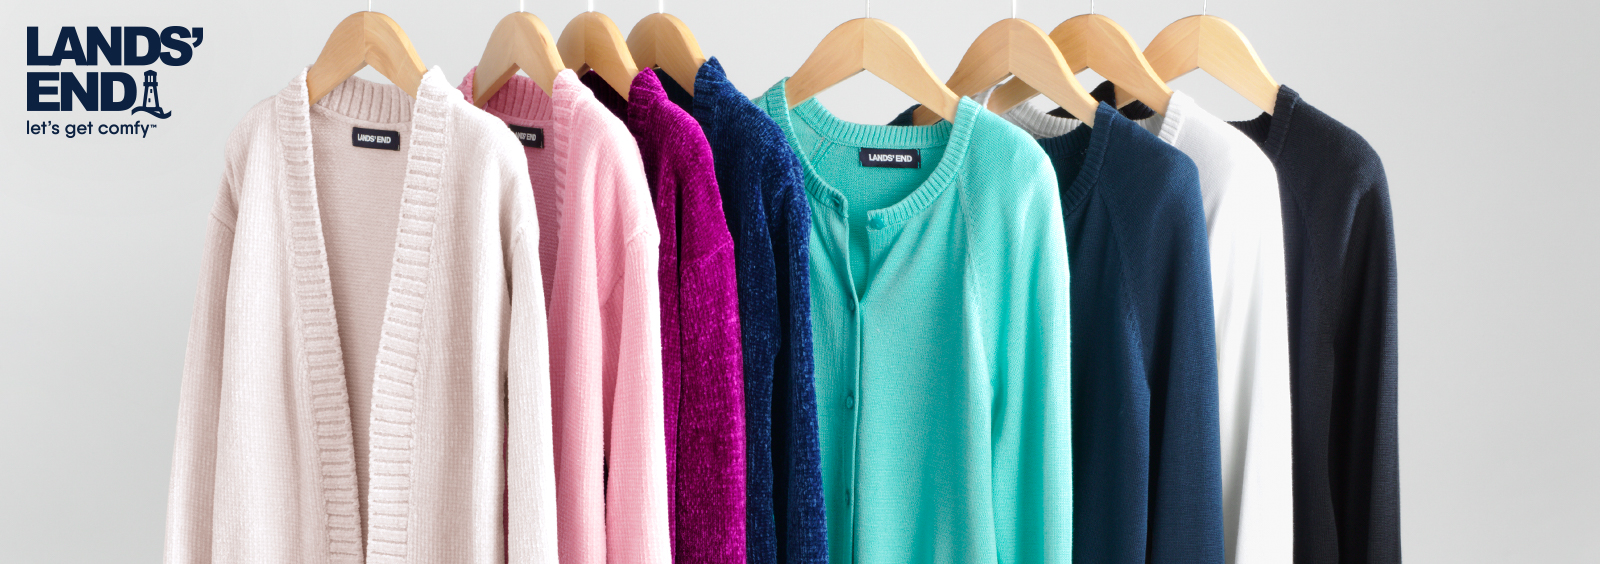 Girls' Cardigan Sweaters for Lounging Around the House on Weekends